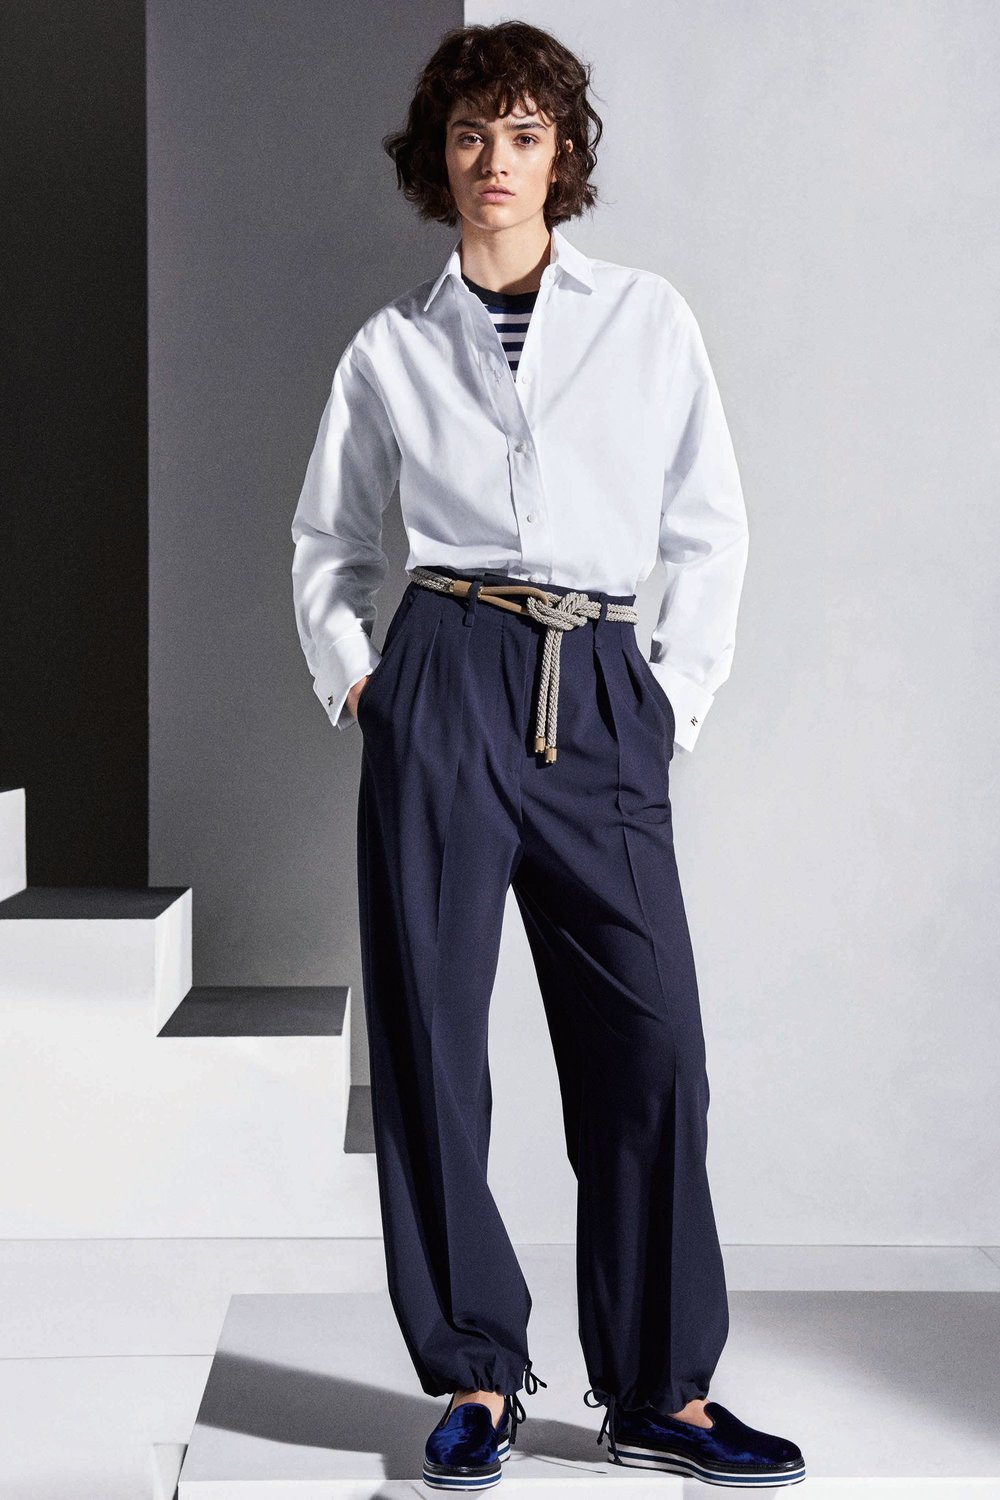 05-Max-Mara-Resort-18.jpg